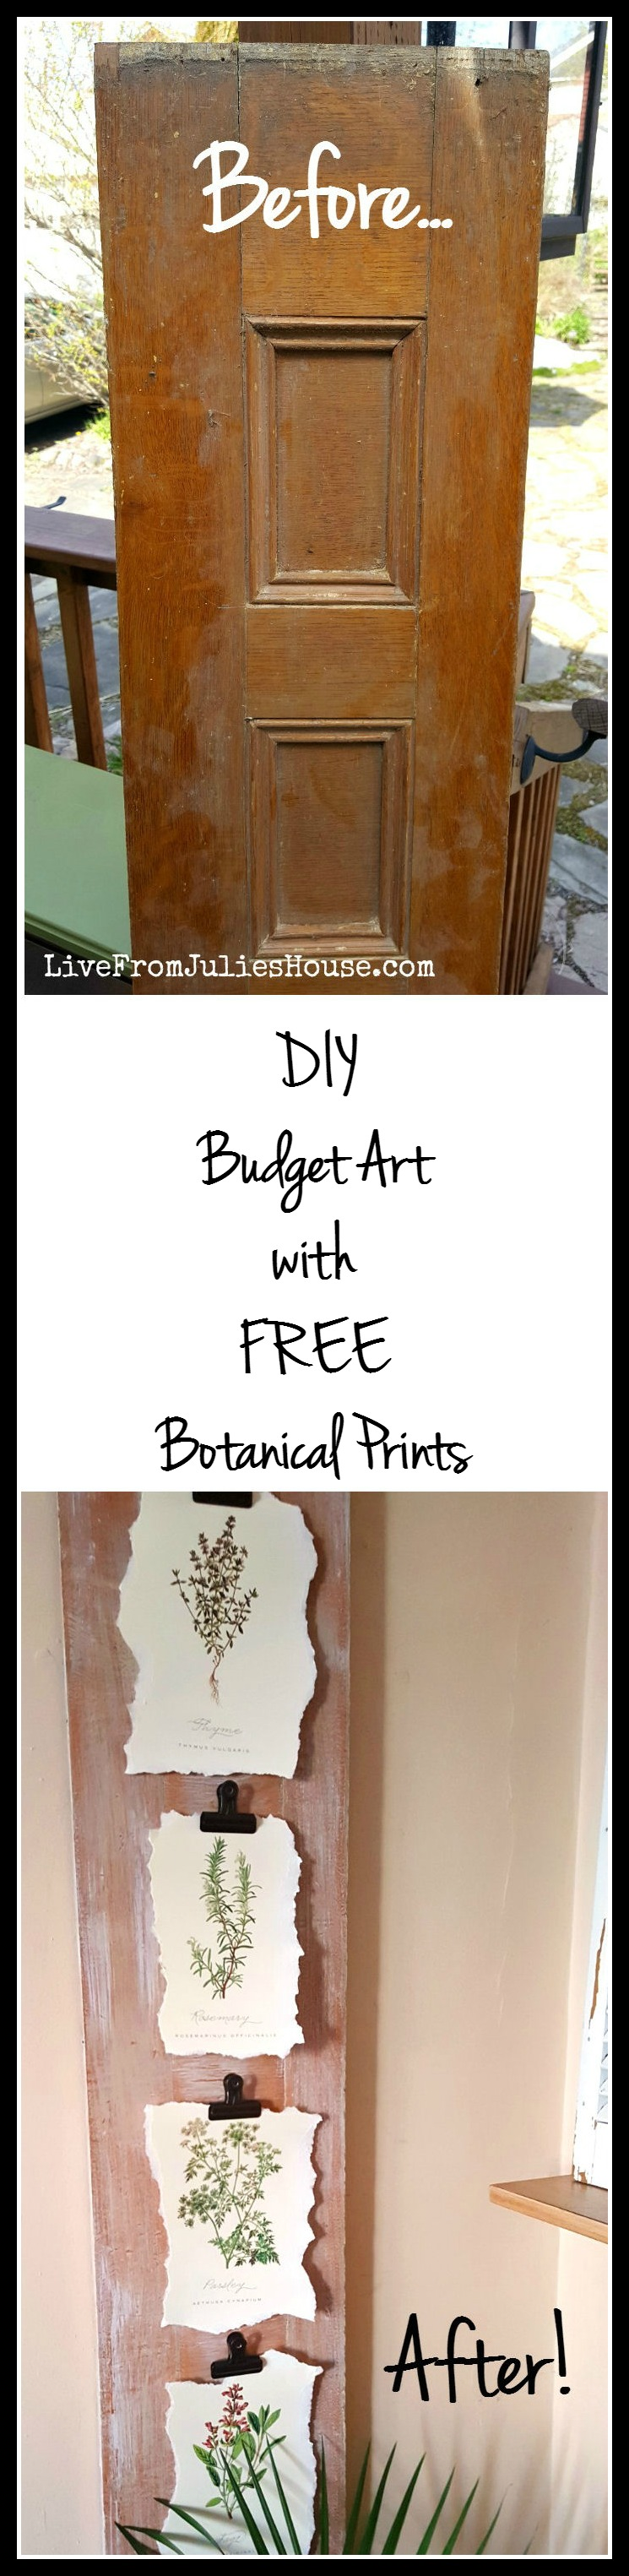 DIY Budget Art with FREE Botanical Prints - Looking for inexpensive art? See how I made my DIY Budget Friendly Art with these terrific FREE botanical prints using a $1 ReStore find.